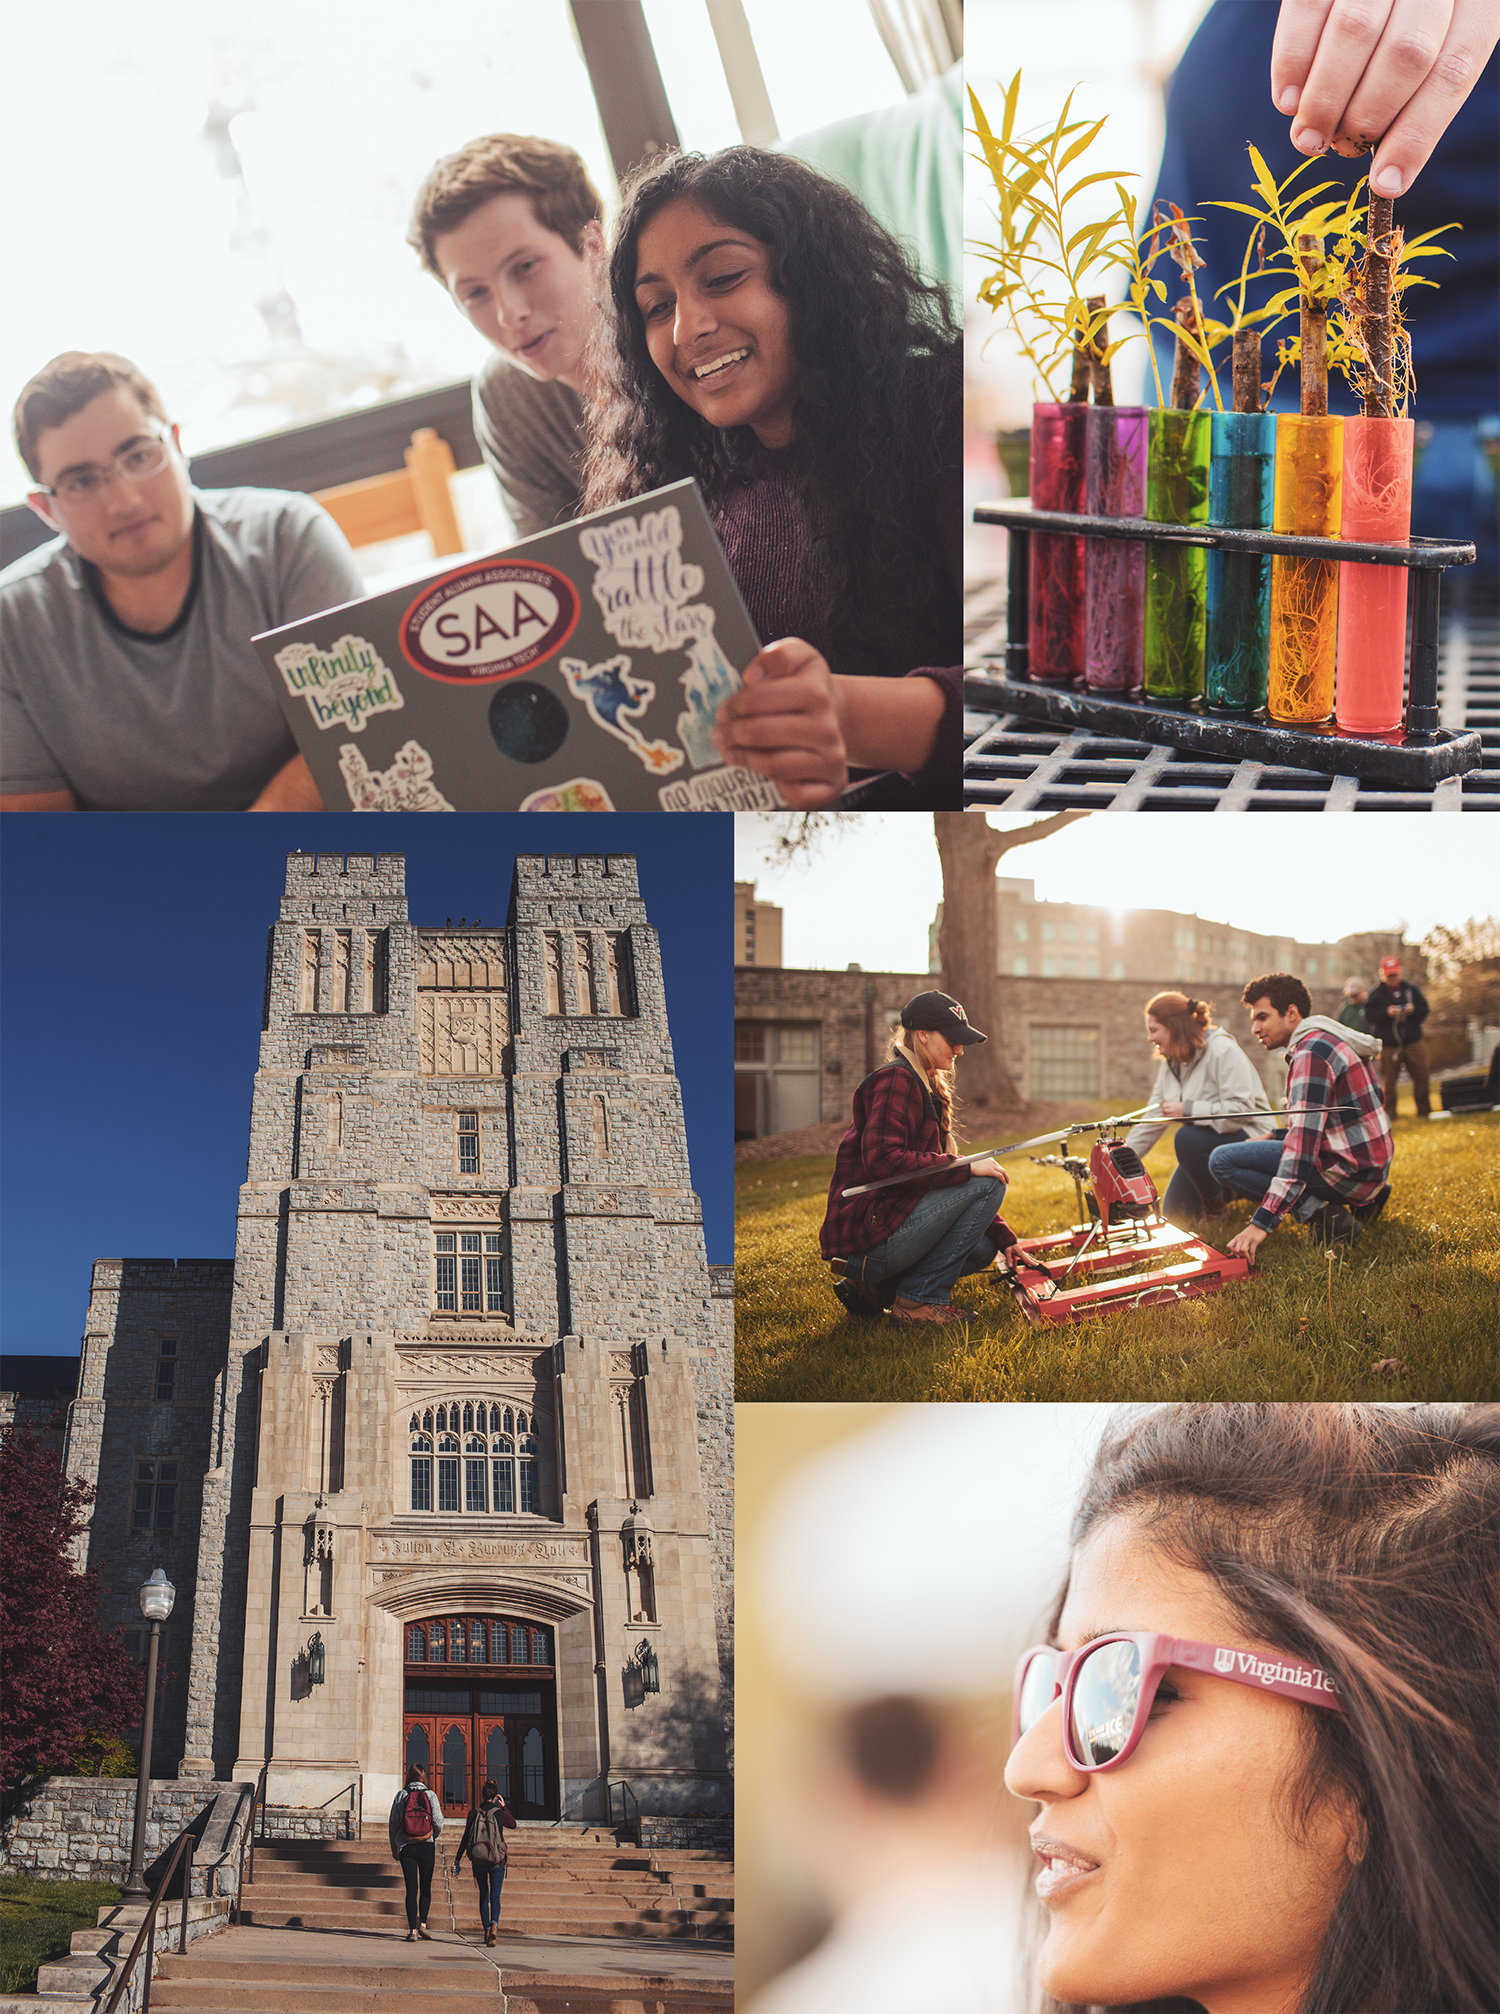 Collage of images of students enagaged in research and various campus activities